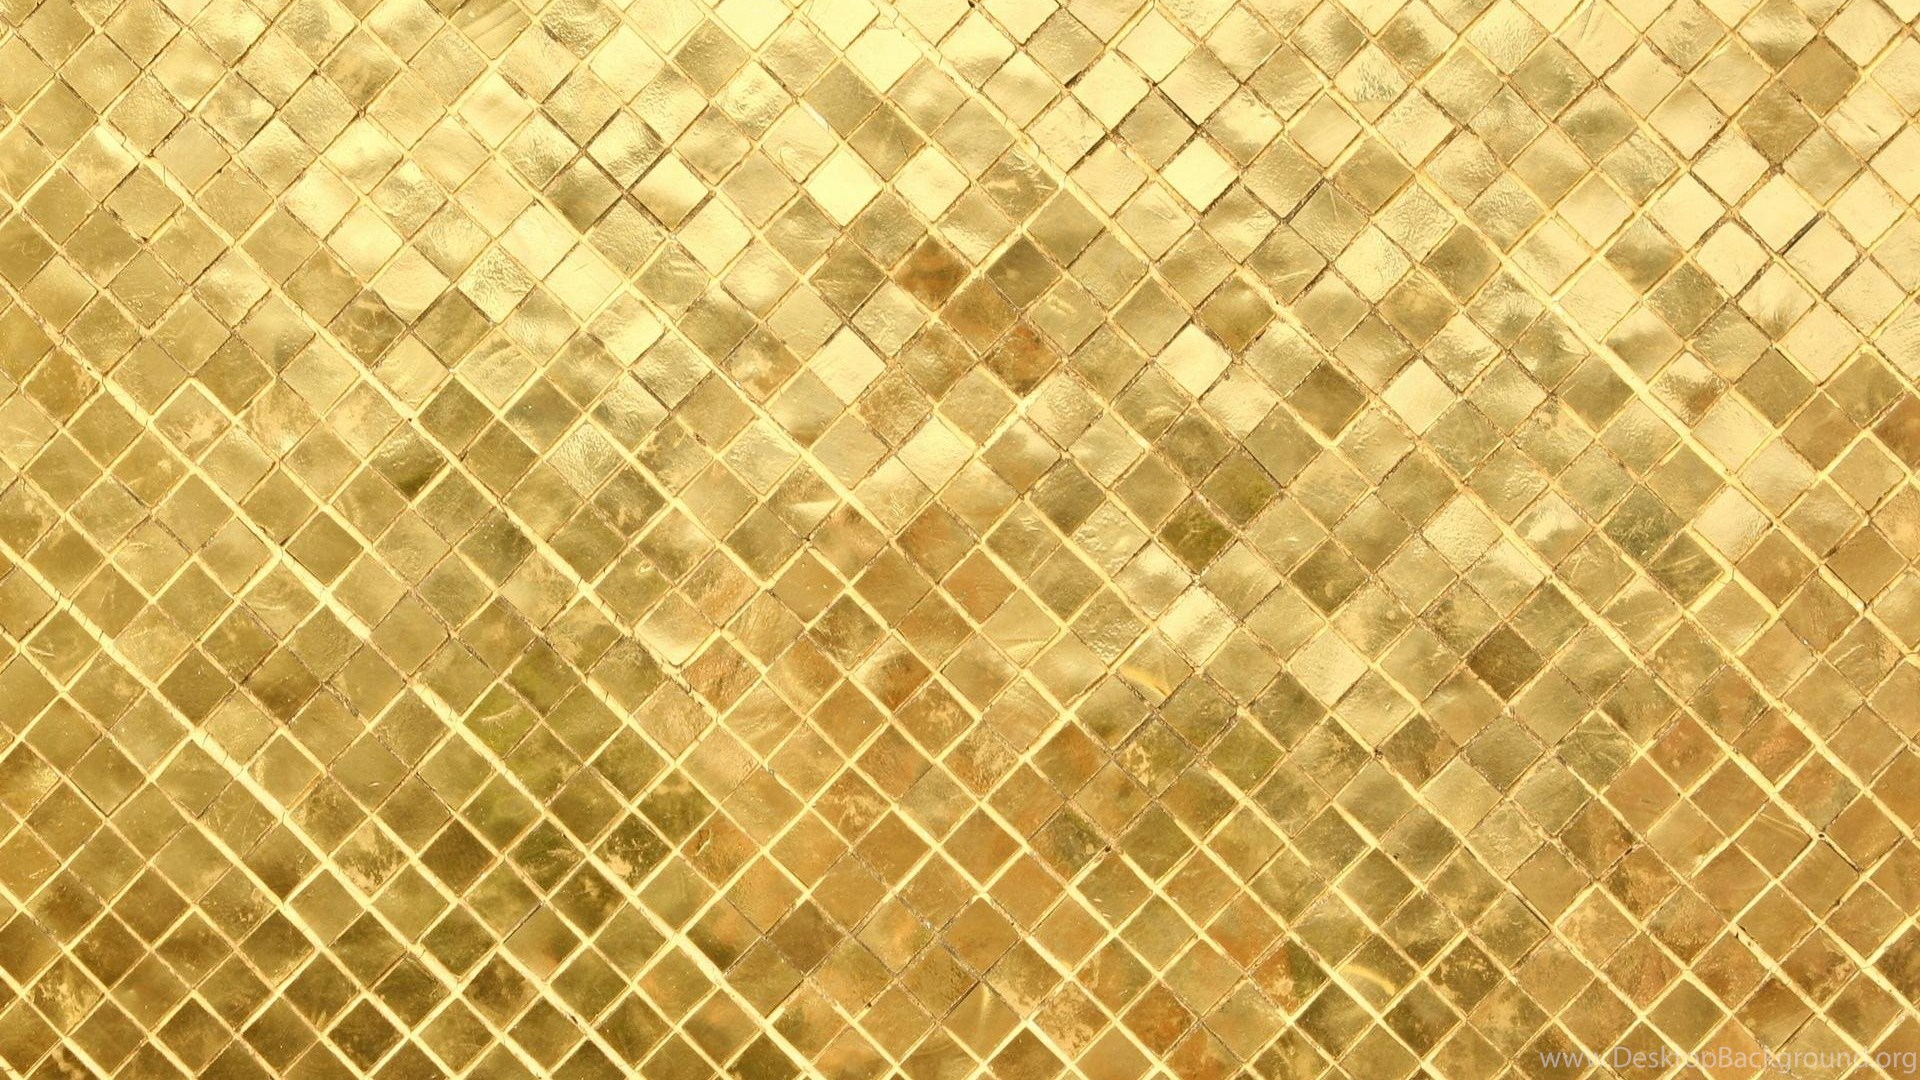 Iphone 5c Wallpaper Hd 1920x1200px Gold Texture Gold Wallpapers Hd Desktop Background